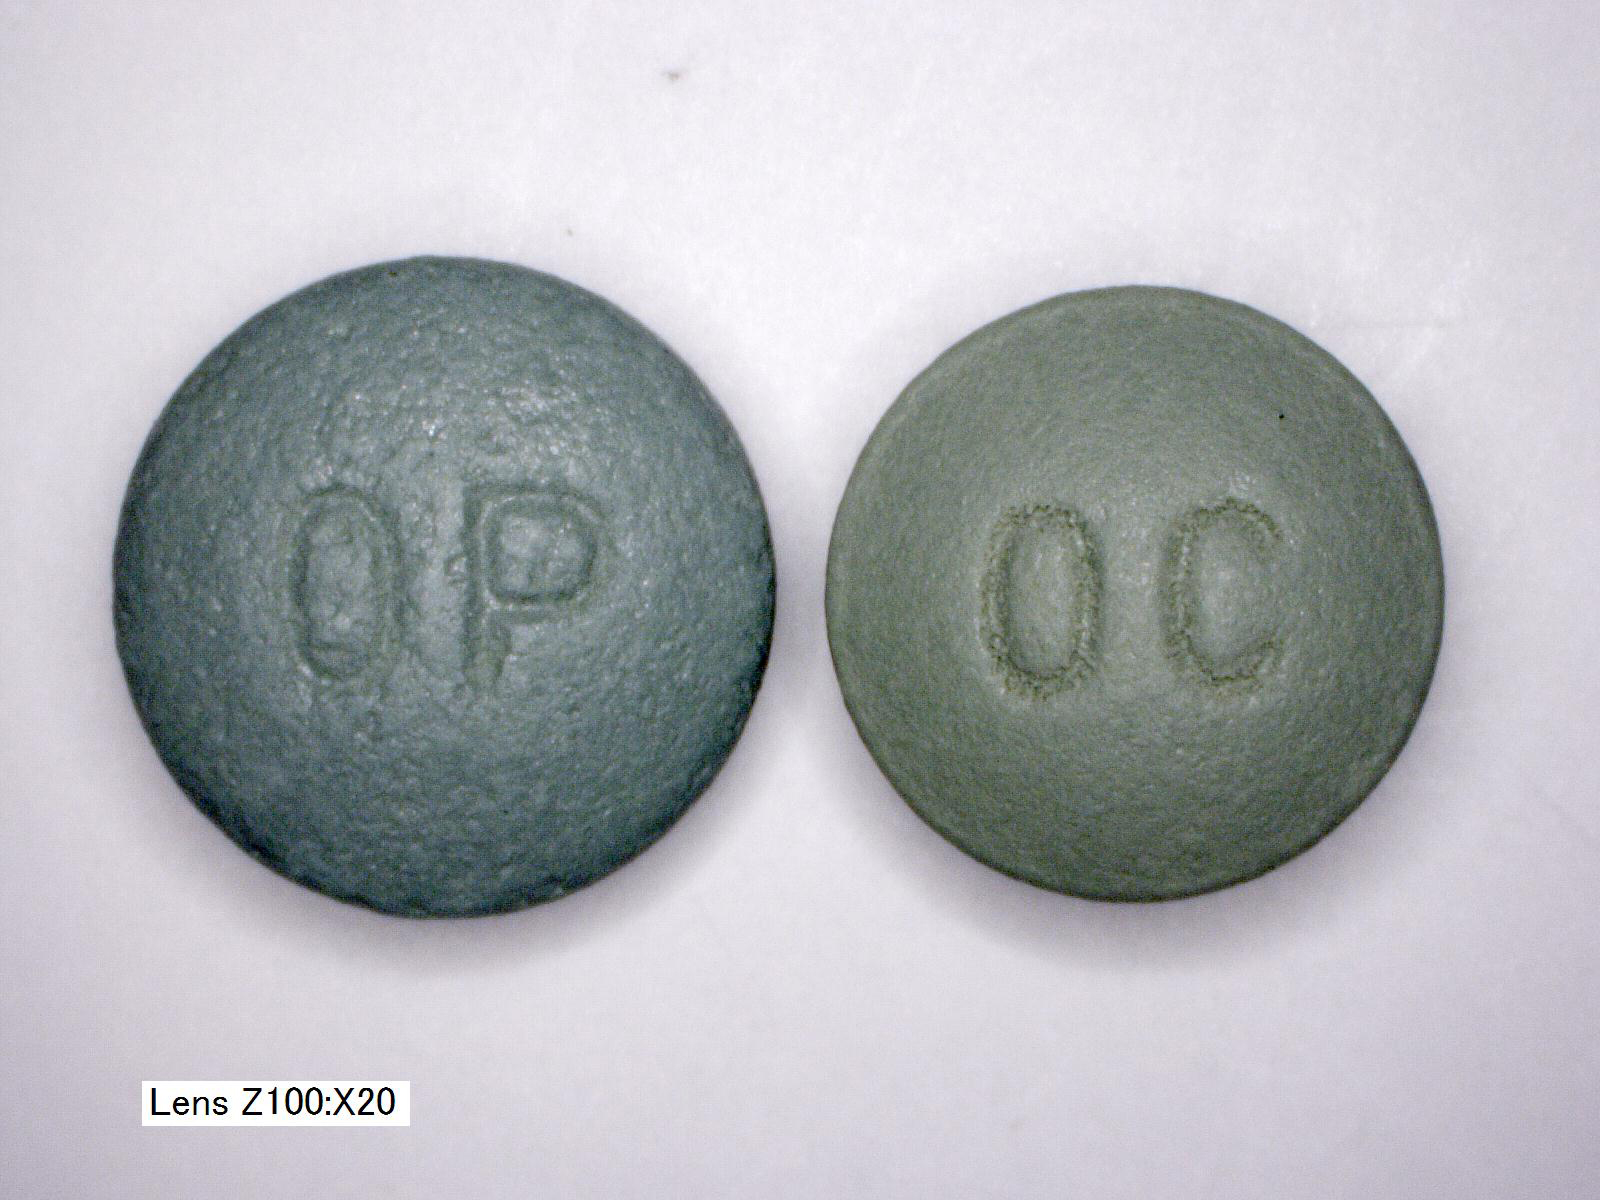 Old Oxycontin Oc Vs New Oxycontin Op Opiate Addiction